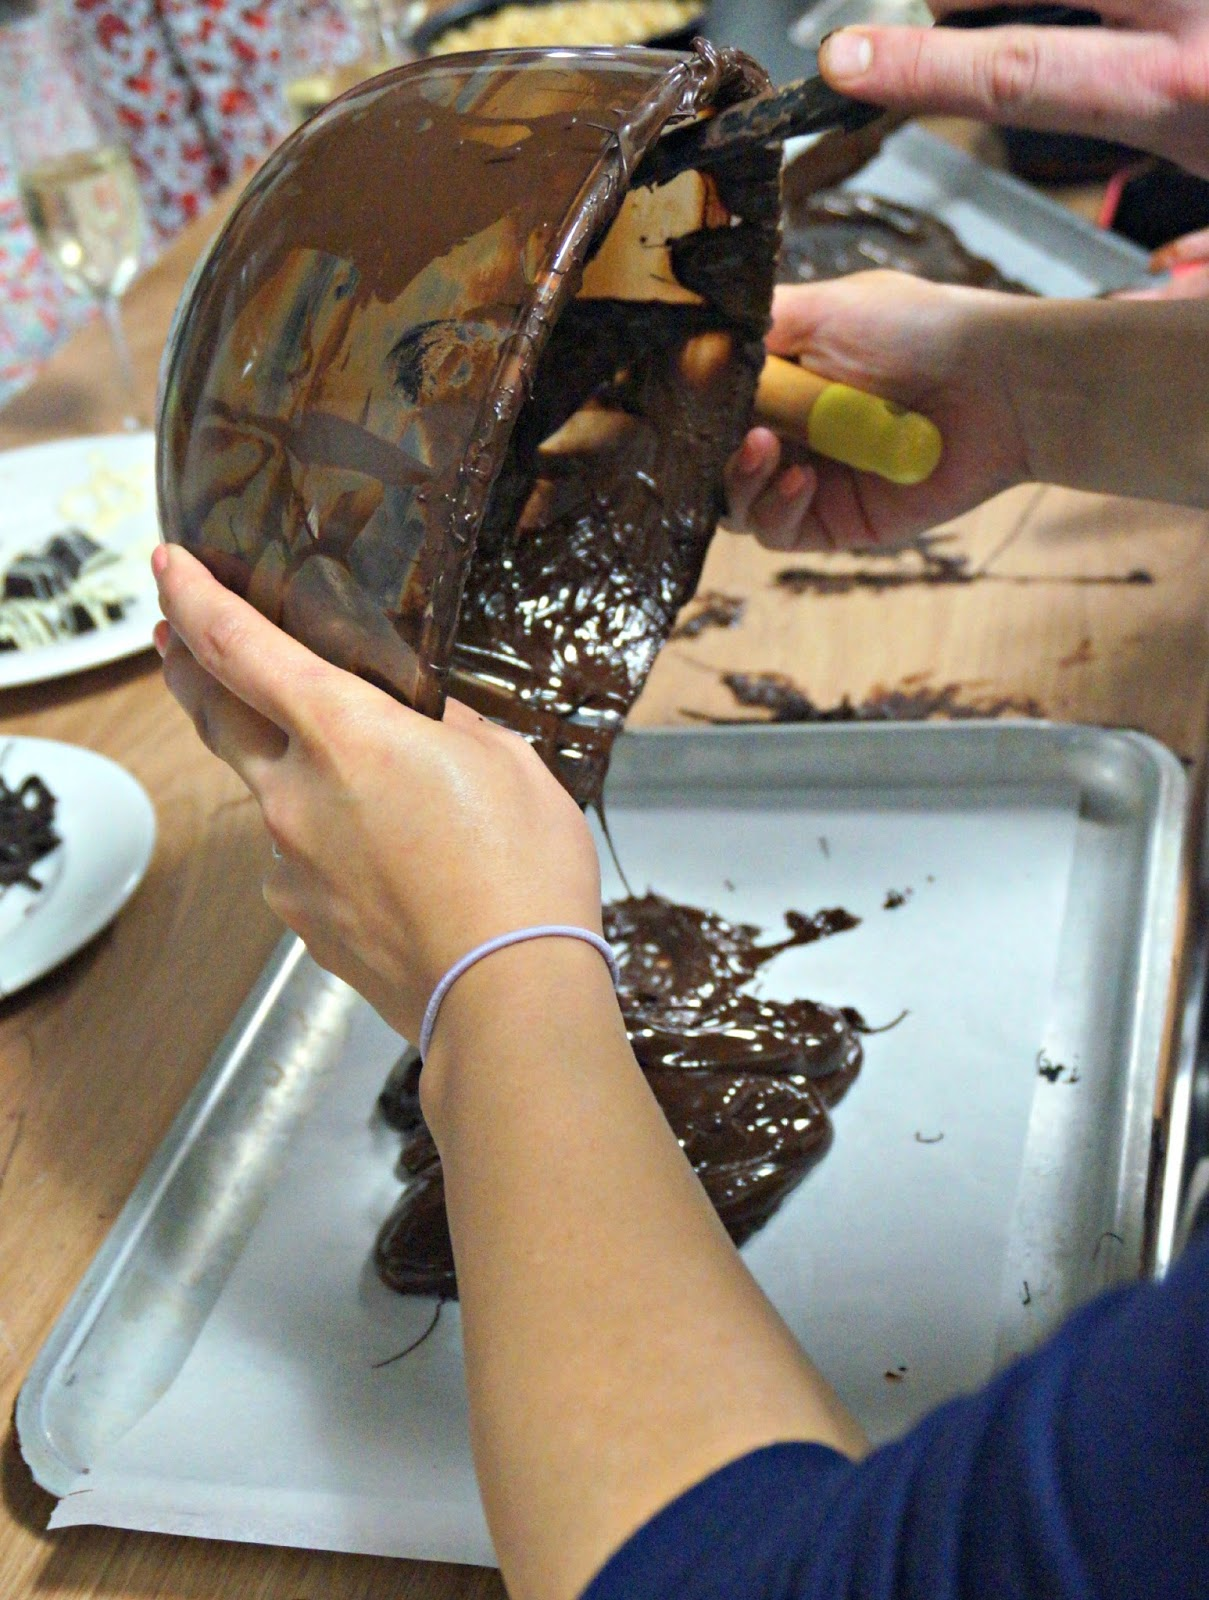 melted chocolate being put on tray